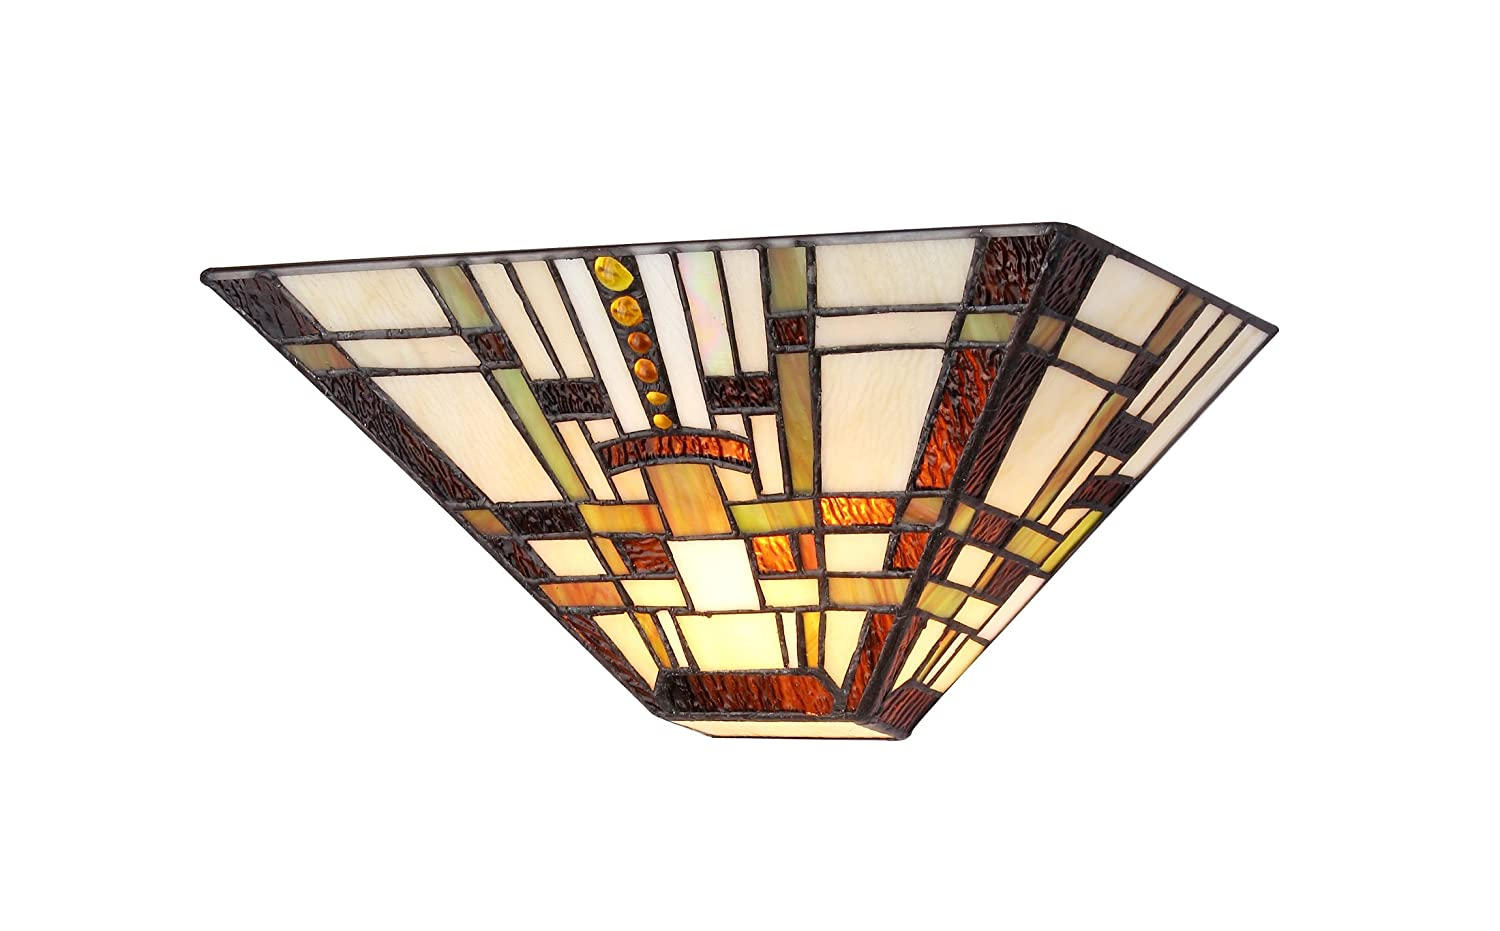 Chloe lighting ch33290ms12 ws1 tiffany style mission 1 light wall chloe lighting ch33290ms12 ws1 tiffany style mission 1 light wall sconce 12 inch multicolored tiffany night light amazon amipublicfo Image collections